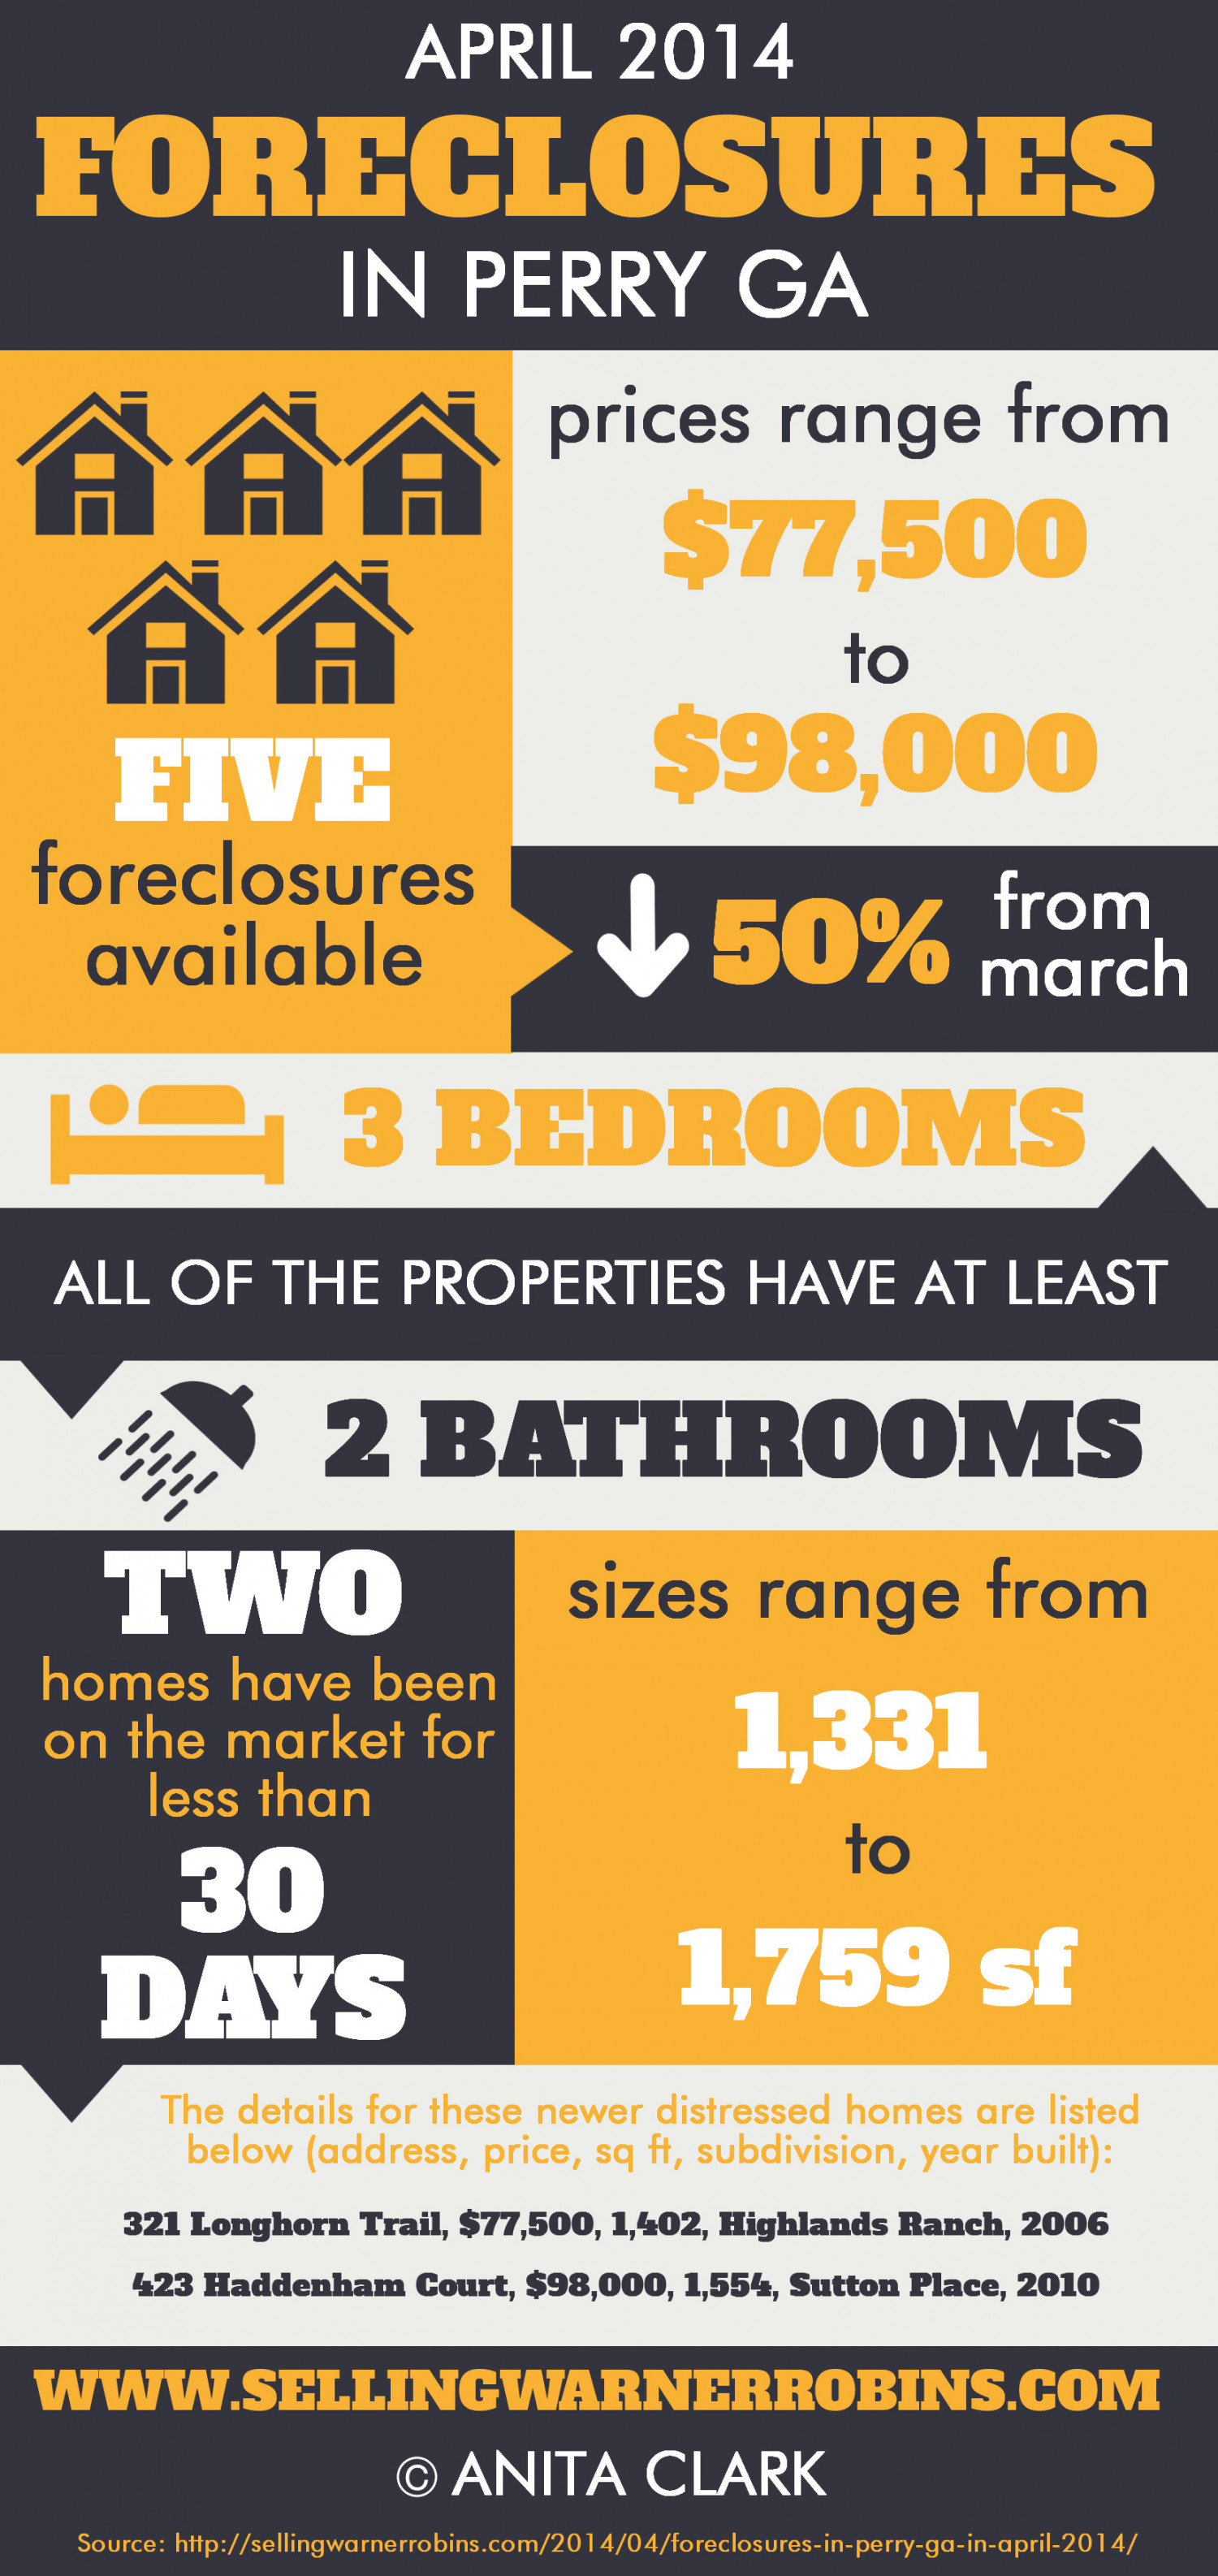 Foreclosures in Perry GA for April 2014 Infographic